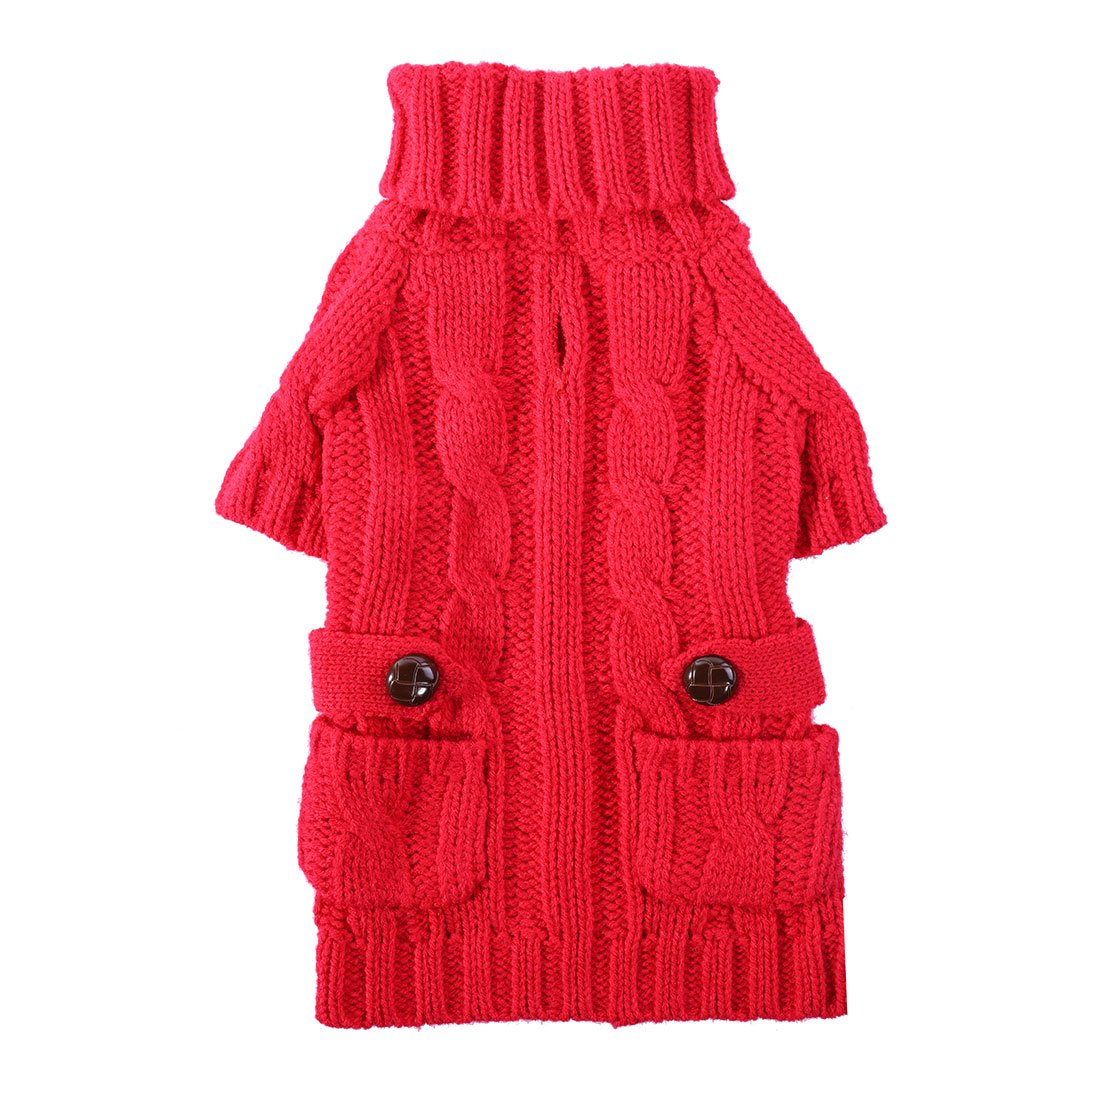 PETCEE Dog Turtleneck Sweater,Knit Pet Sweater Dog Festival Sweater for Large Dog Back Lenght 22''(Classic Red)